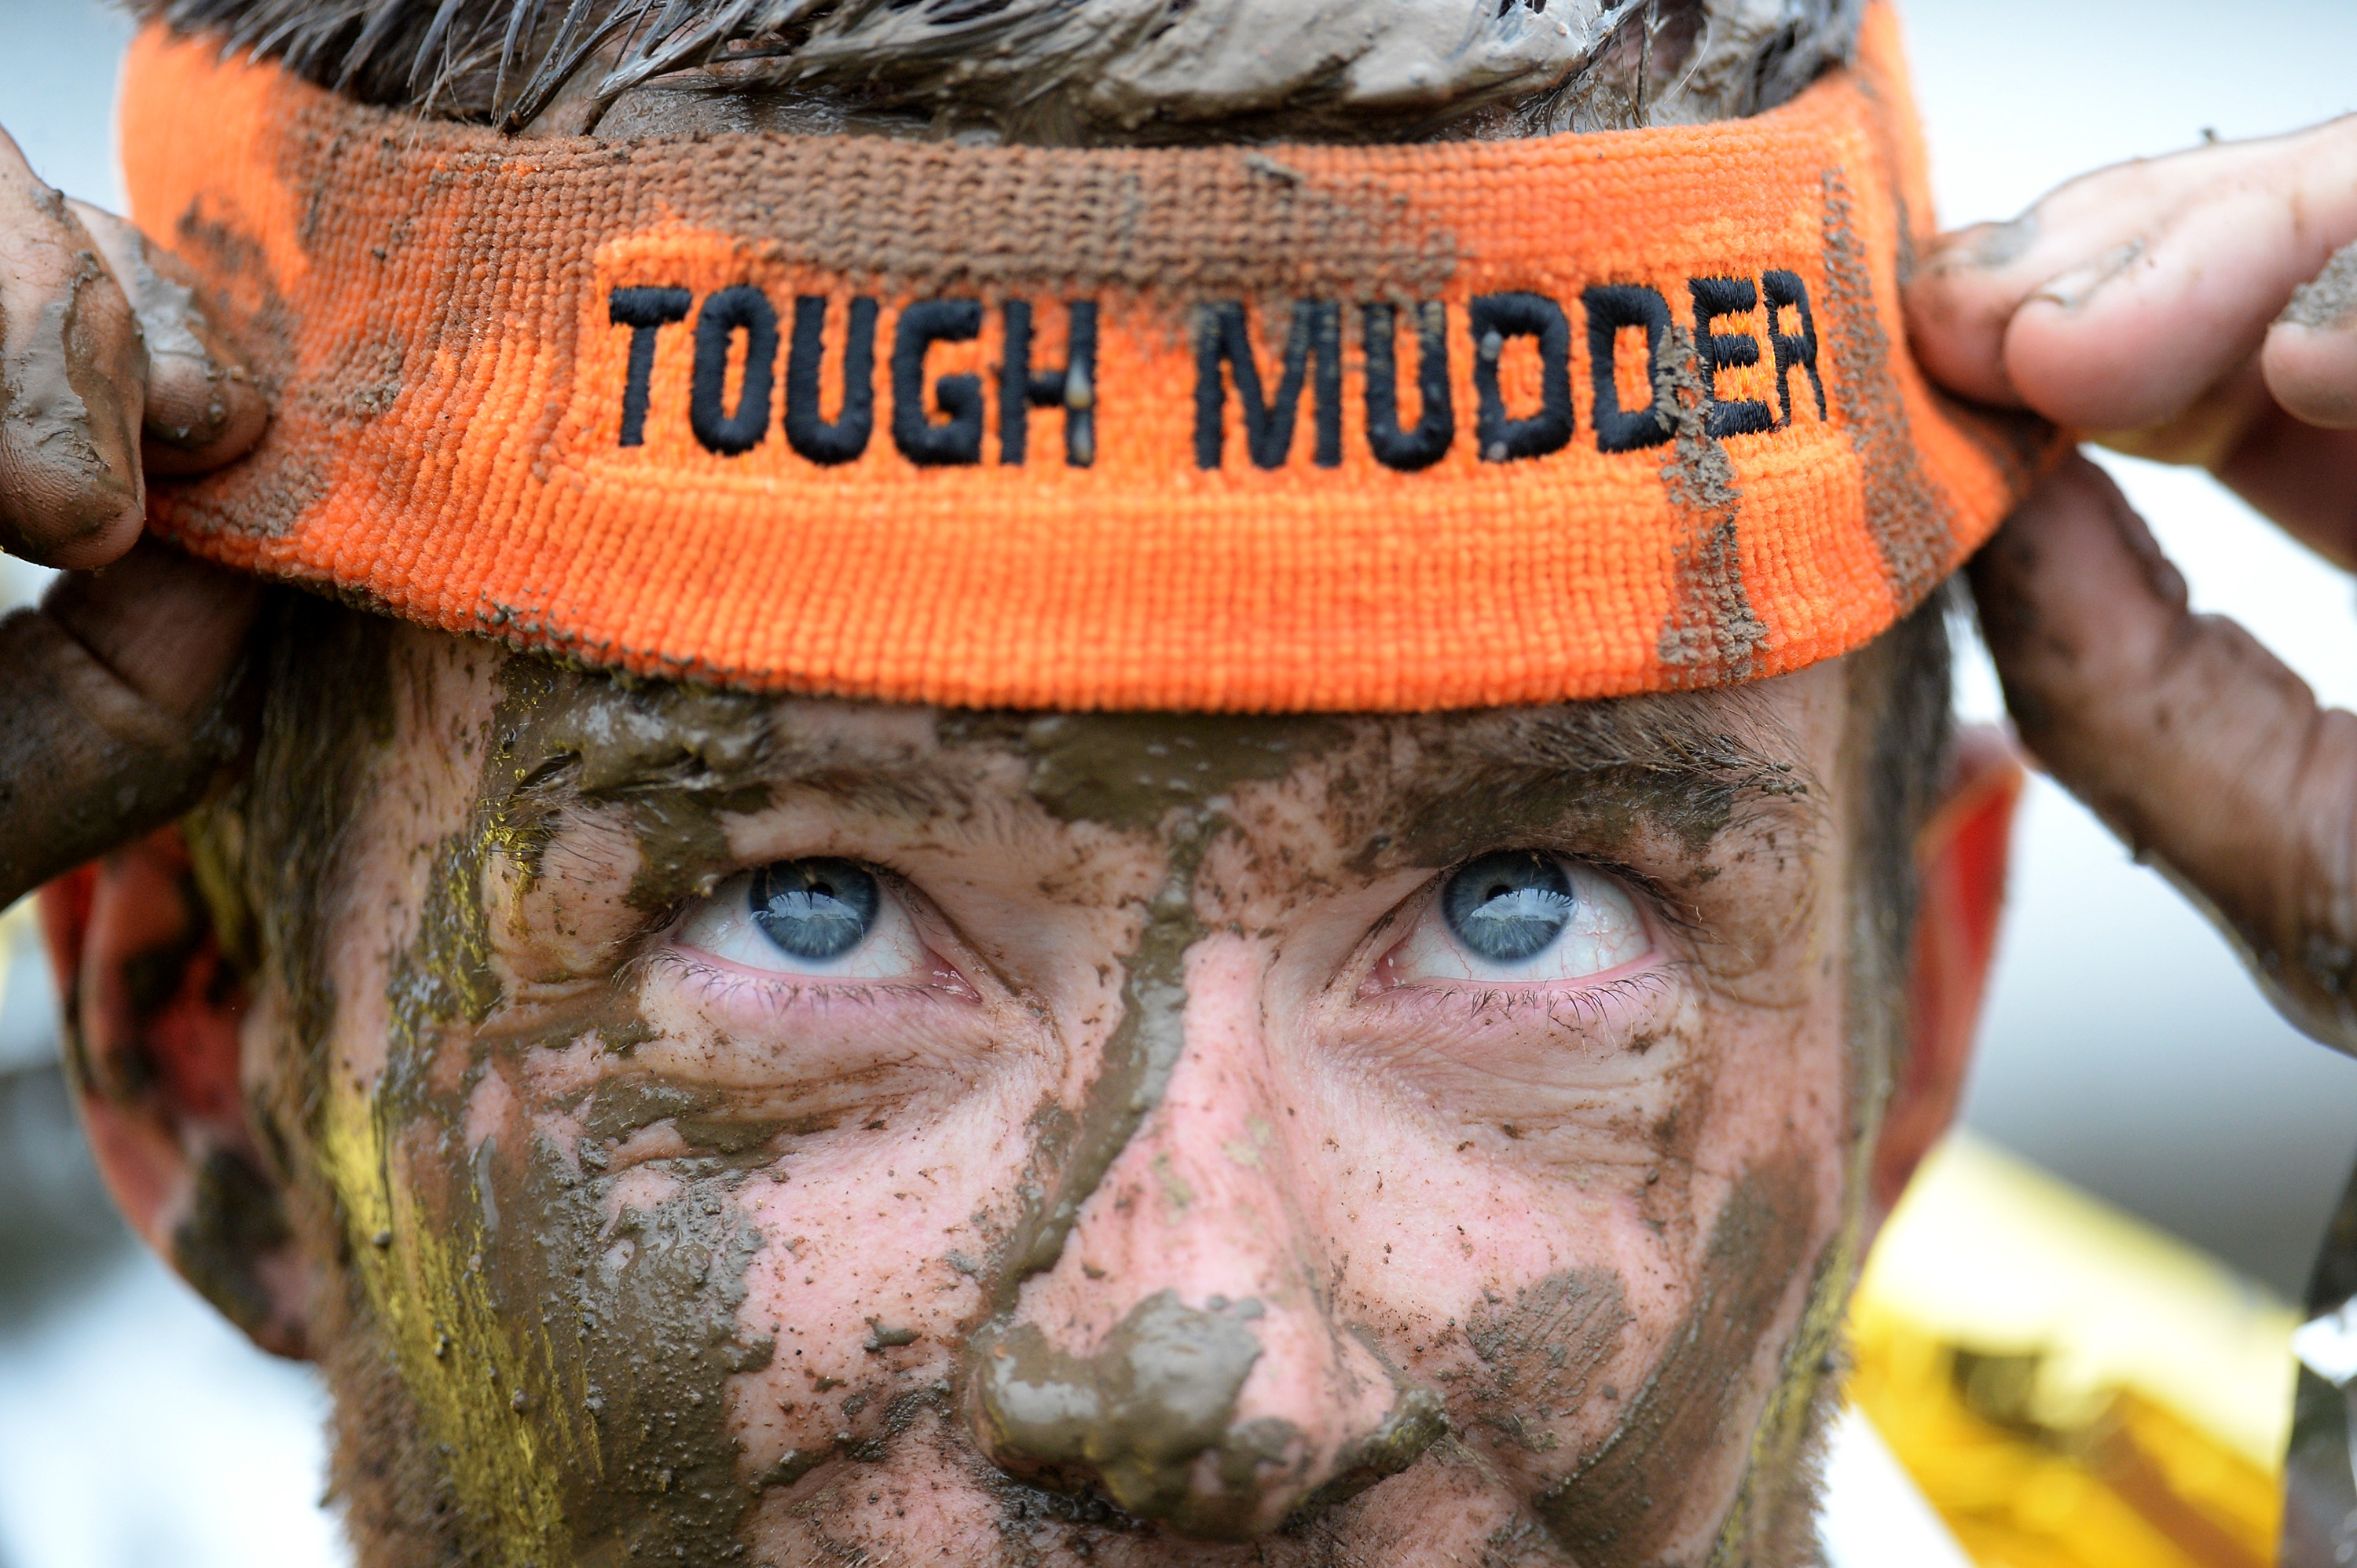 Tough Mudder Endurance Race Takes Place In Edinburgh